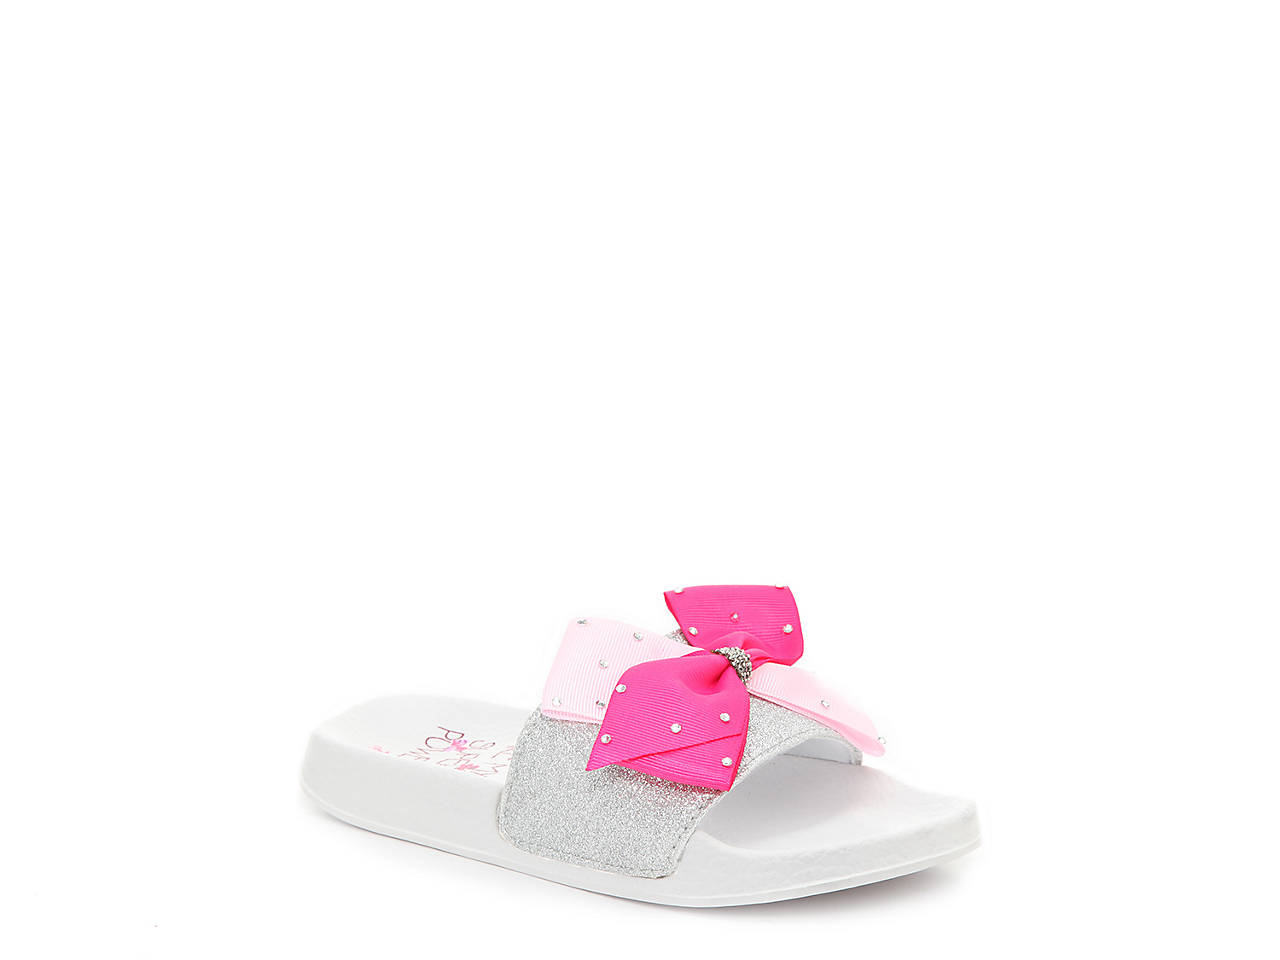 0800124f6318 Ground Up Jojo Siwa Youth Slide Sandal Kids Shoes